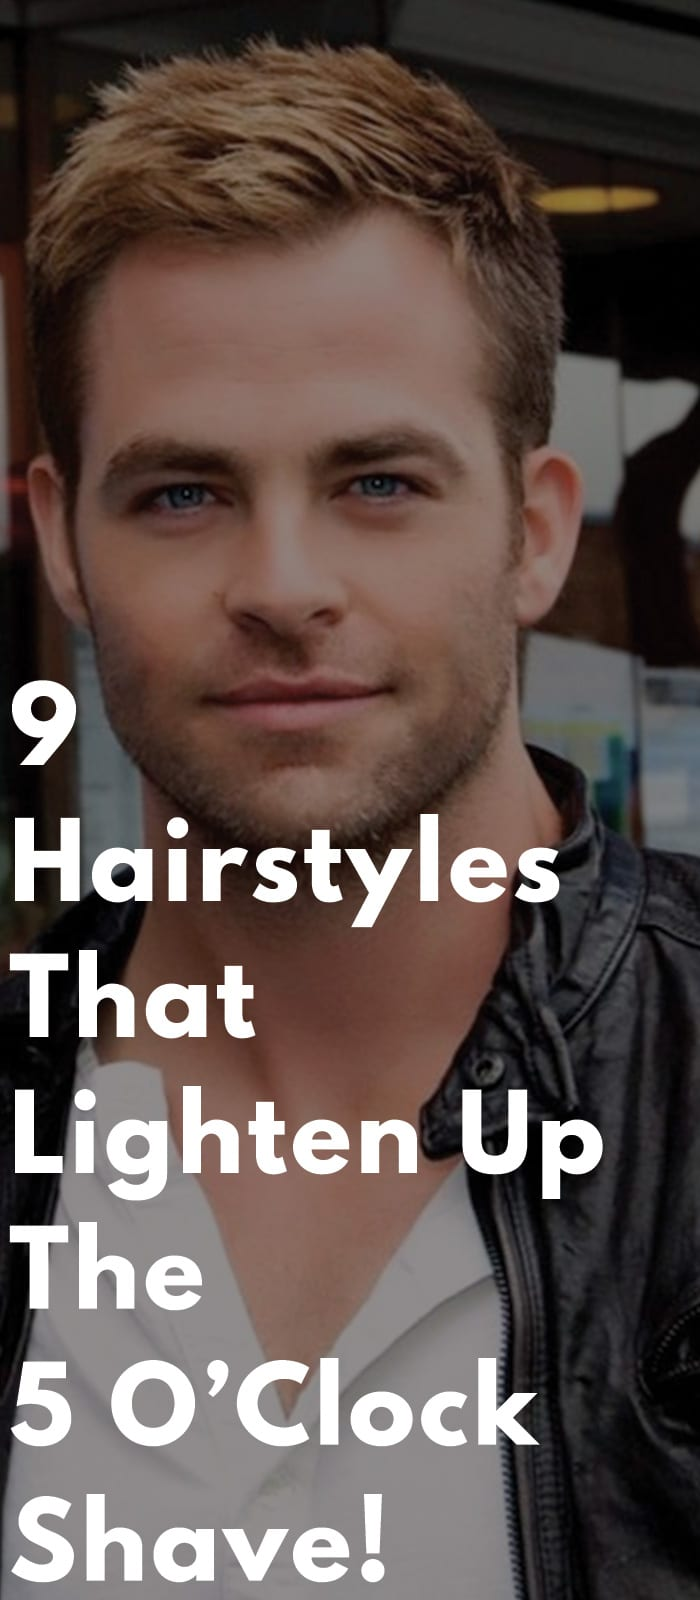 9-Hairstyles-That-Lighten-Up-The-5-O'Clock-Shave!